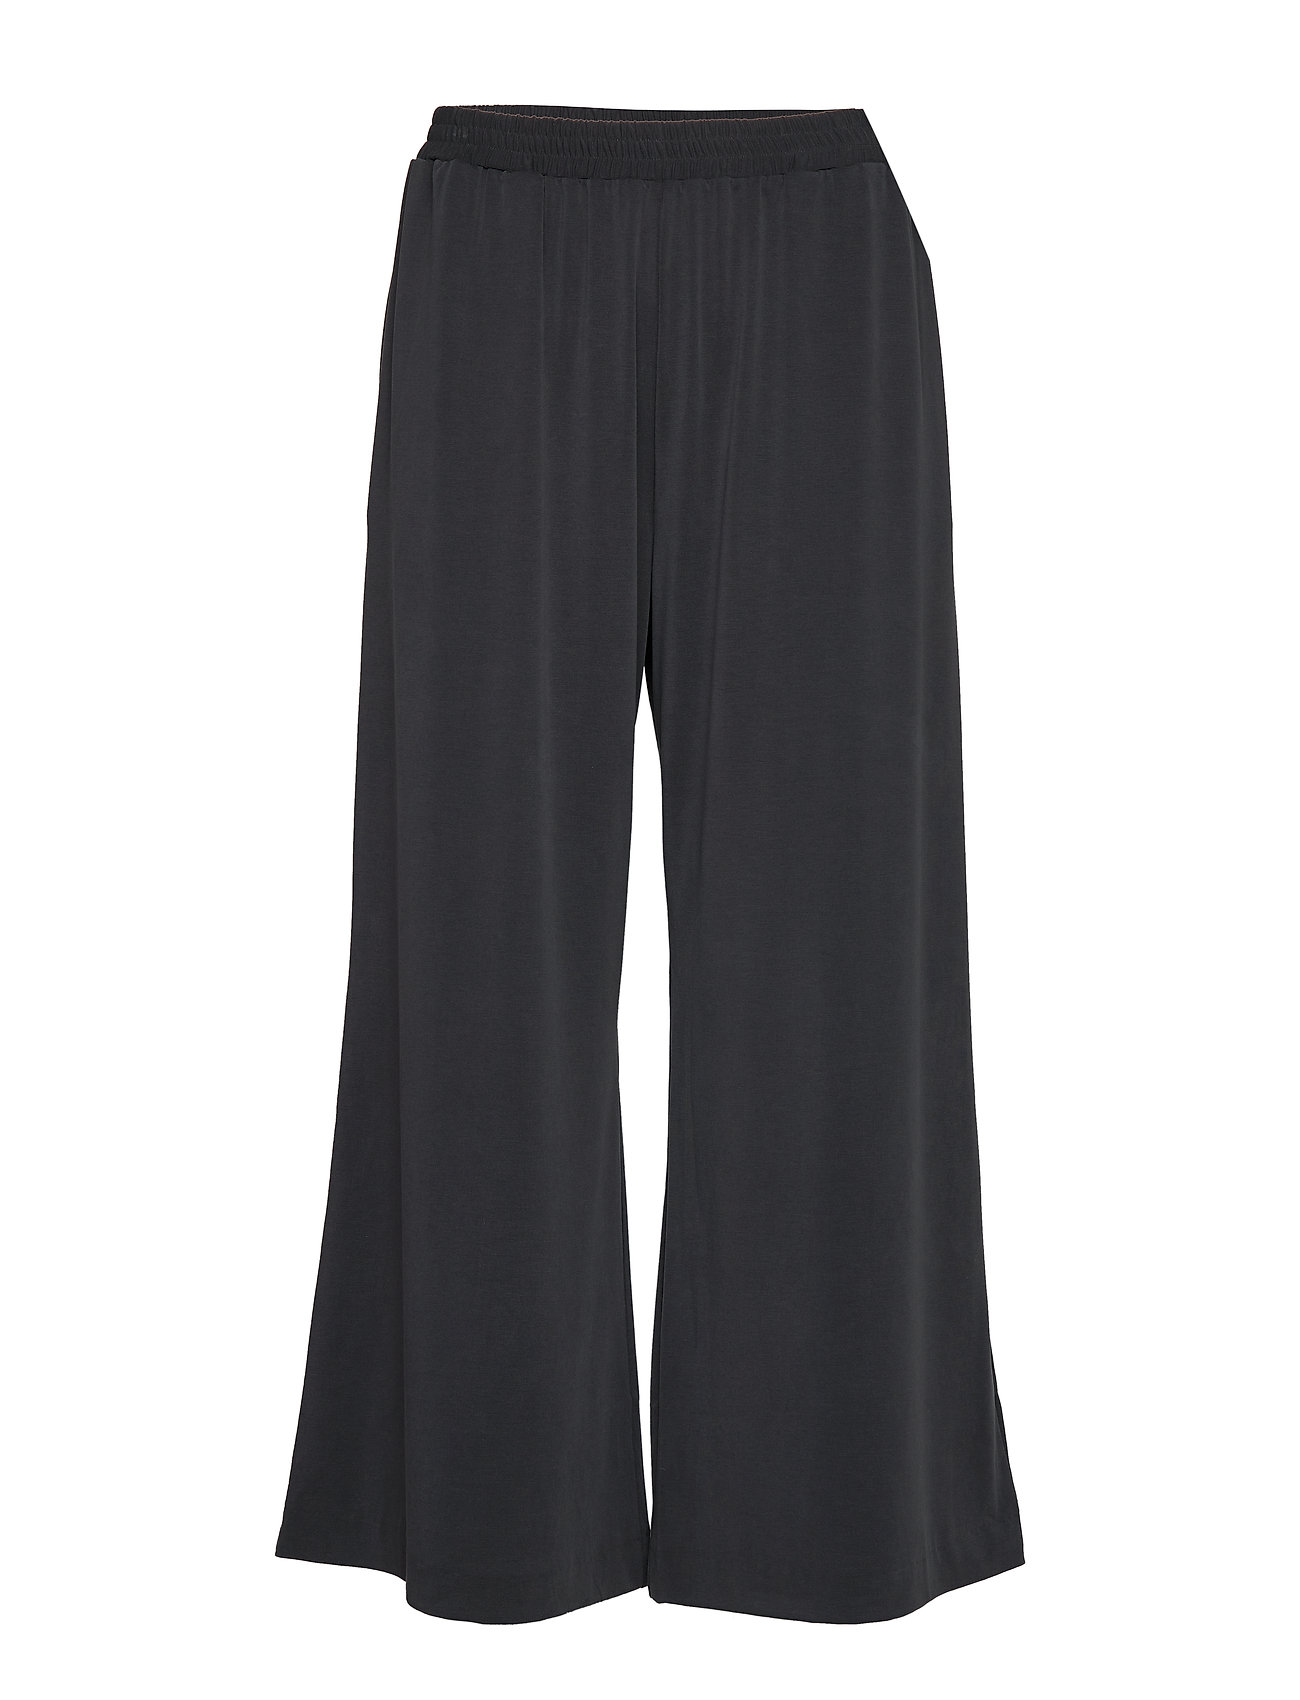 French Connection RENYA JERSY CULOTTES - BLACK